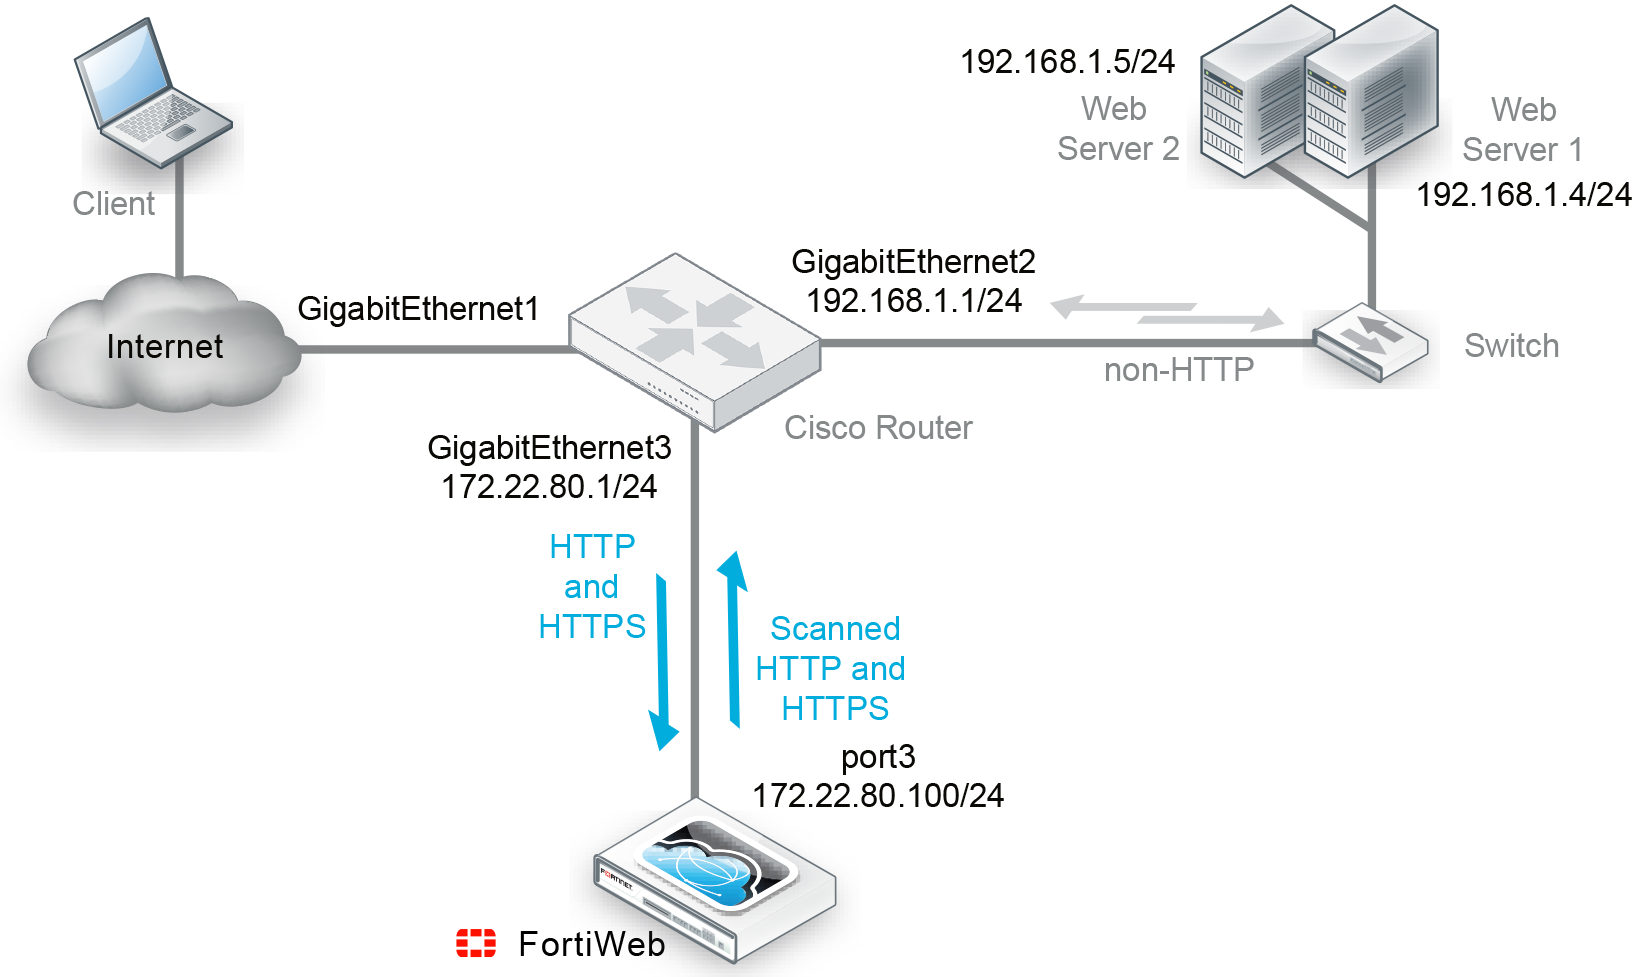 Configuring Fortiweb To Receive Traffic Via Wccp Cisco Router Diagram In This Example A Running Ios Routes Http And Https Destined For The Back End Servers Scanning